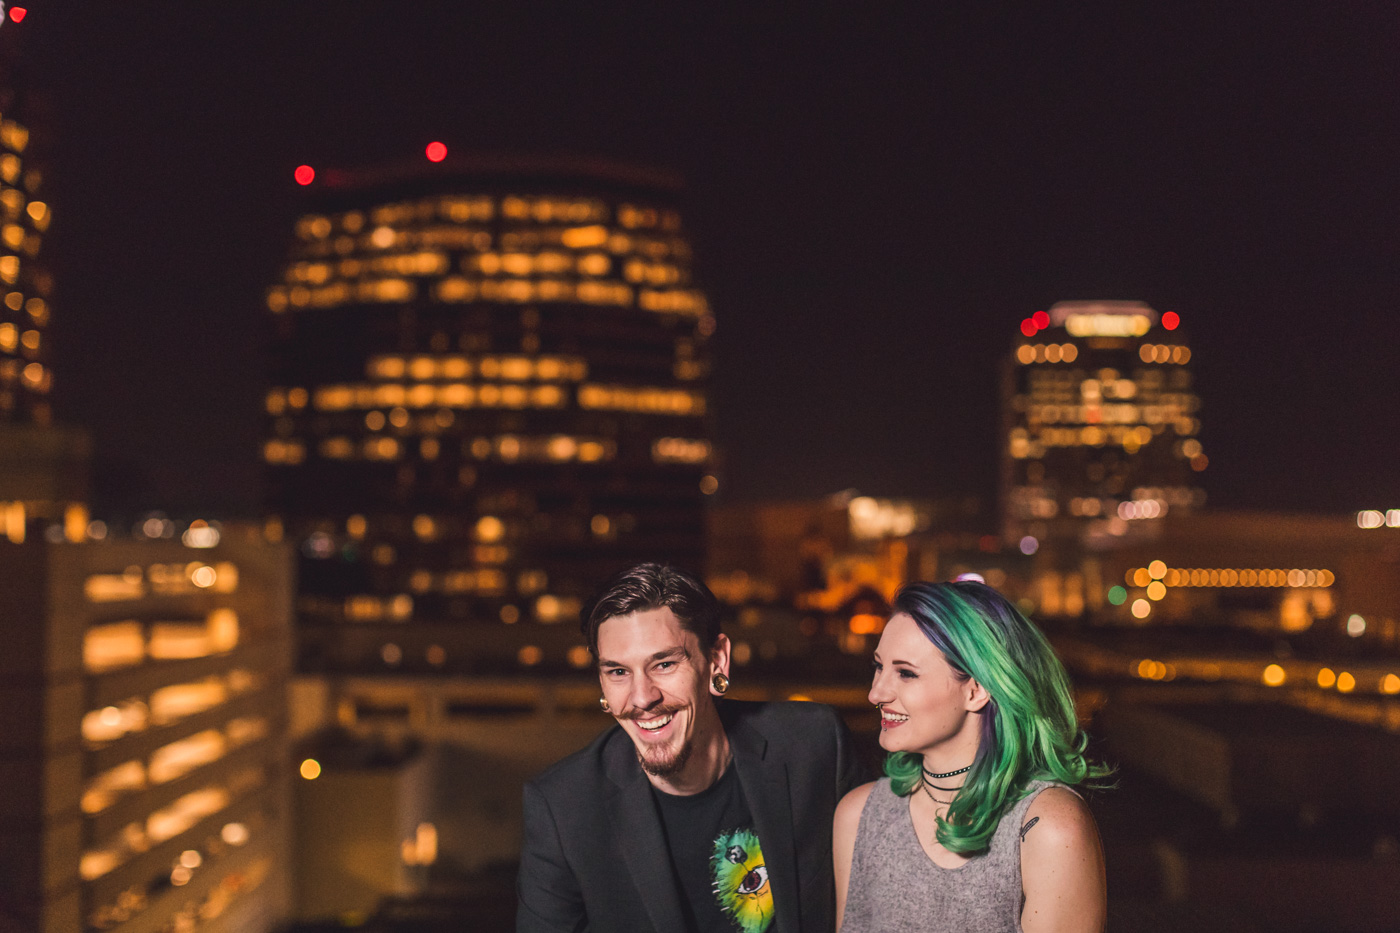 aaron-kes-photography-downtown-phoenix-night-engagement-session-12.jpg